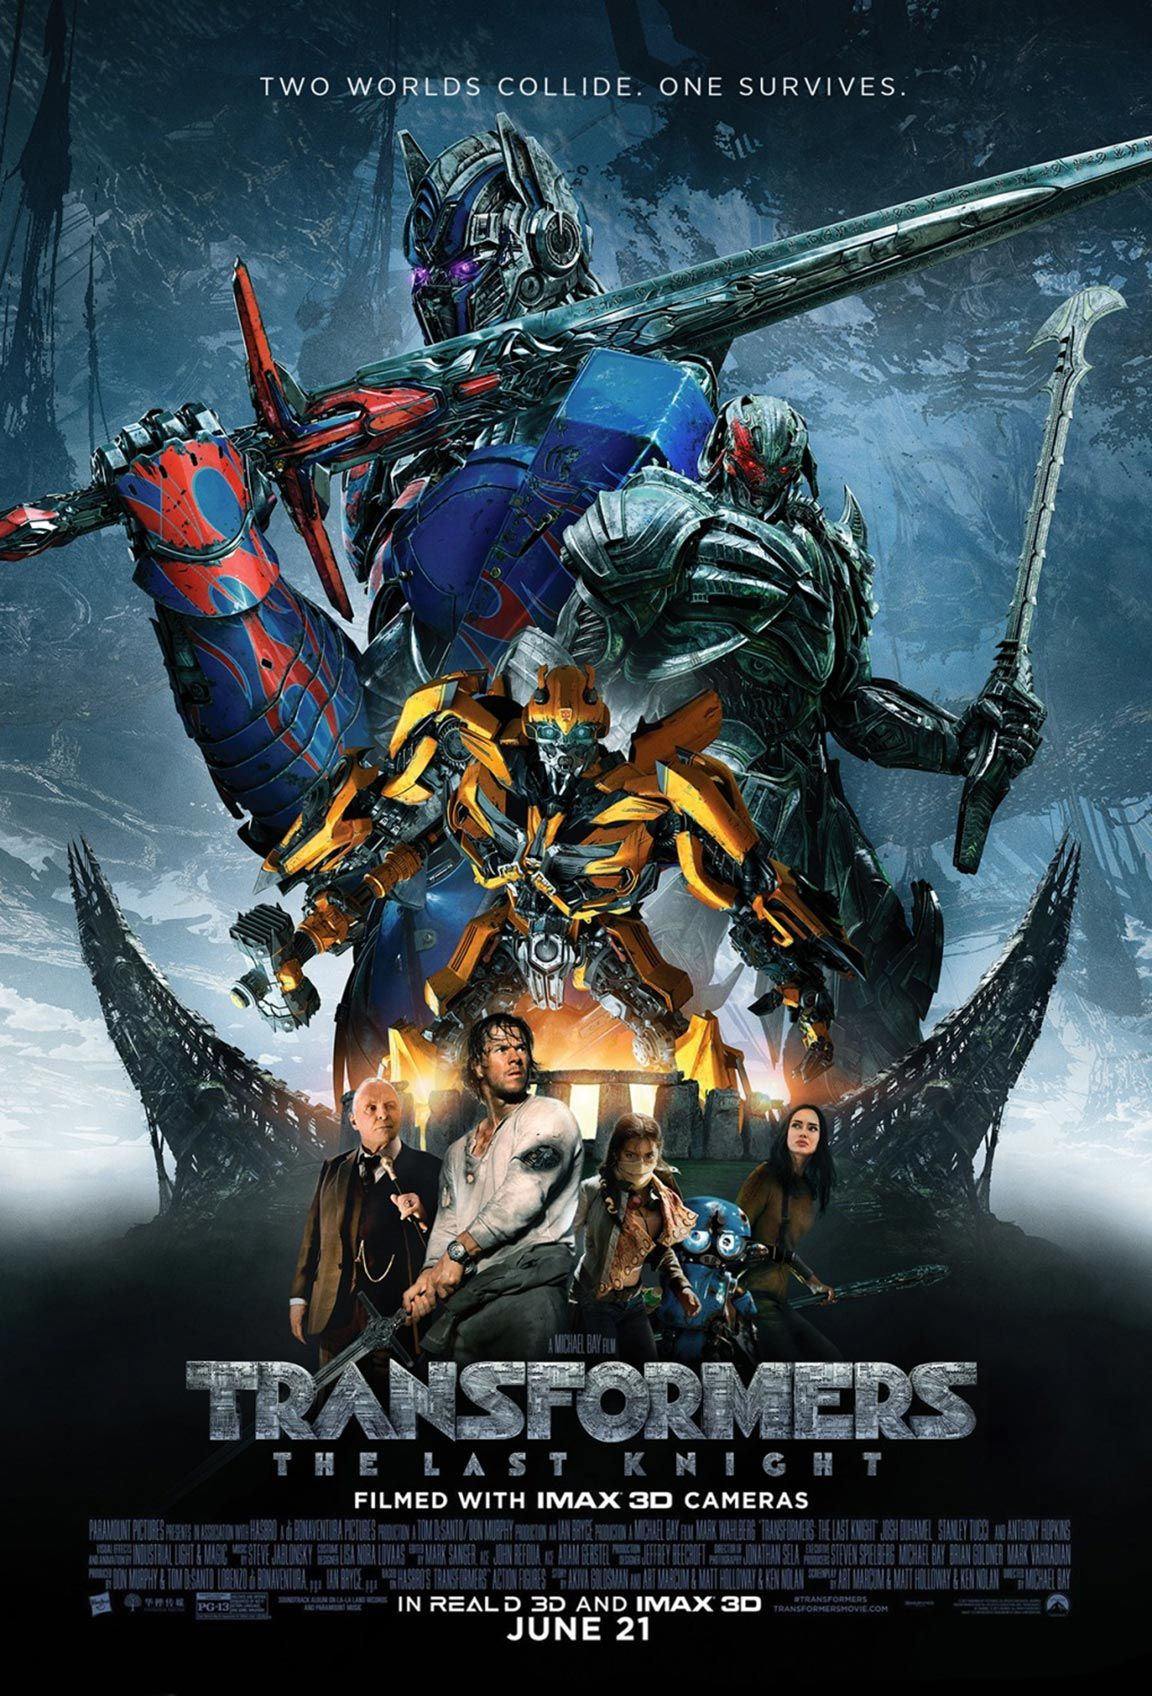 transformers the last knight full movie free no download